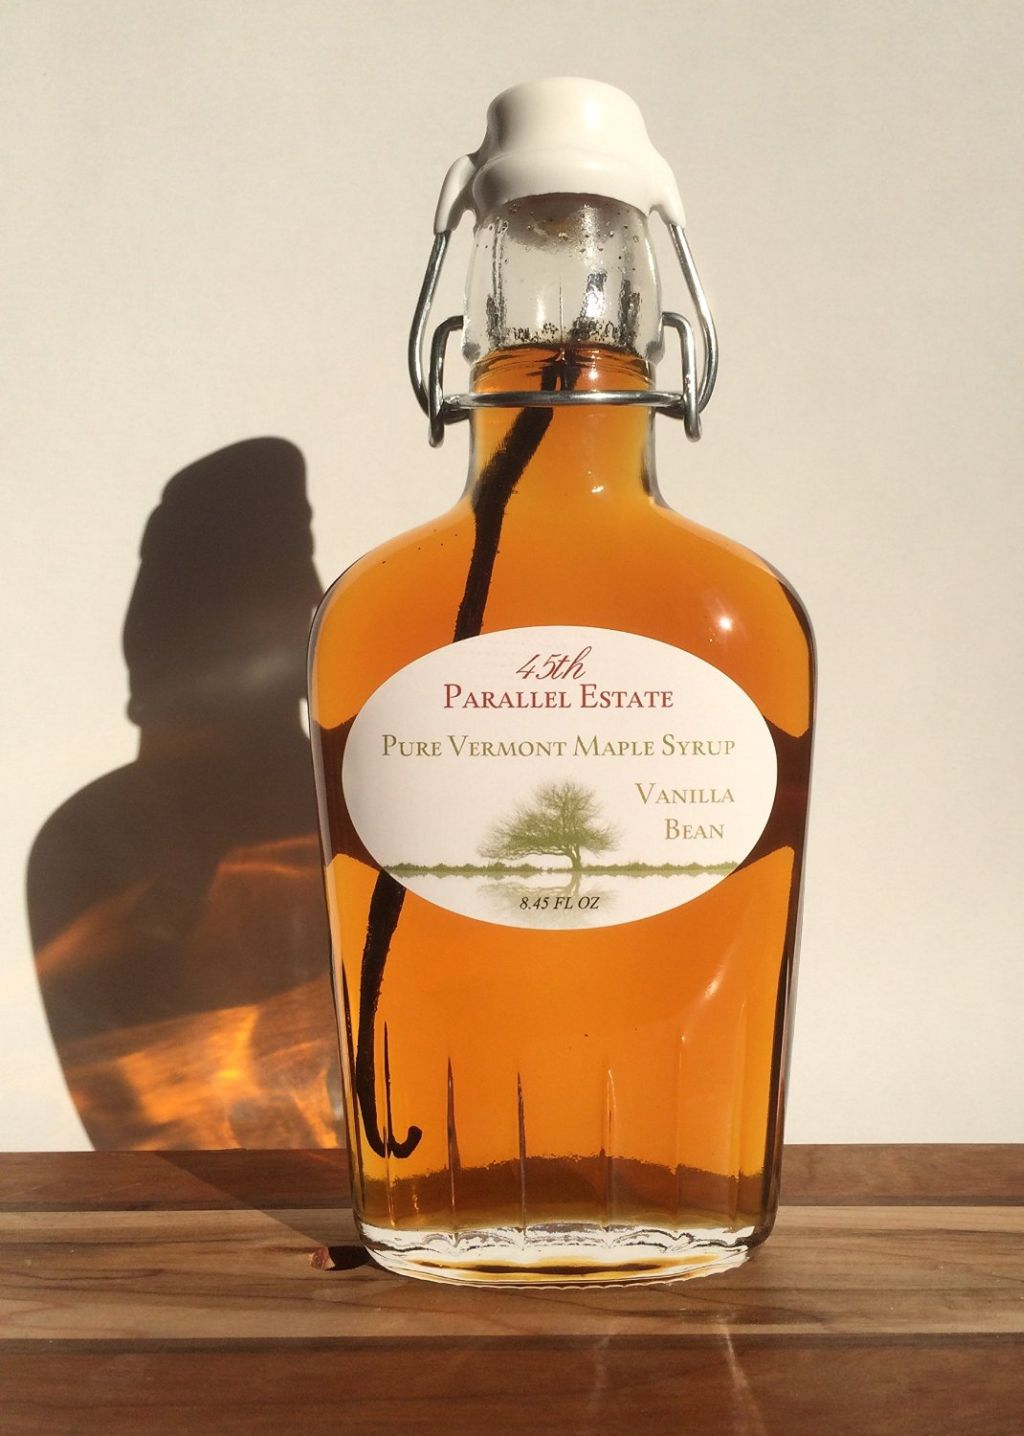 45th Parallel Estate - Pure Vermont Maple Syrup (Vanilla Infused)